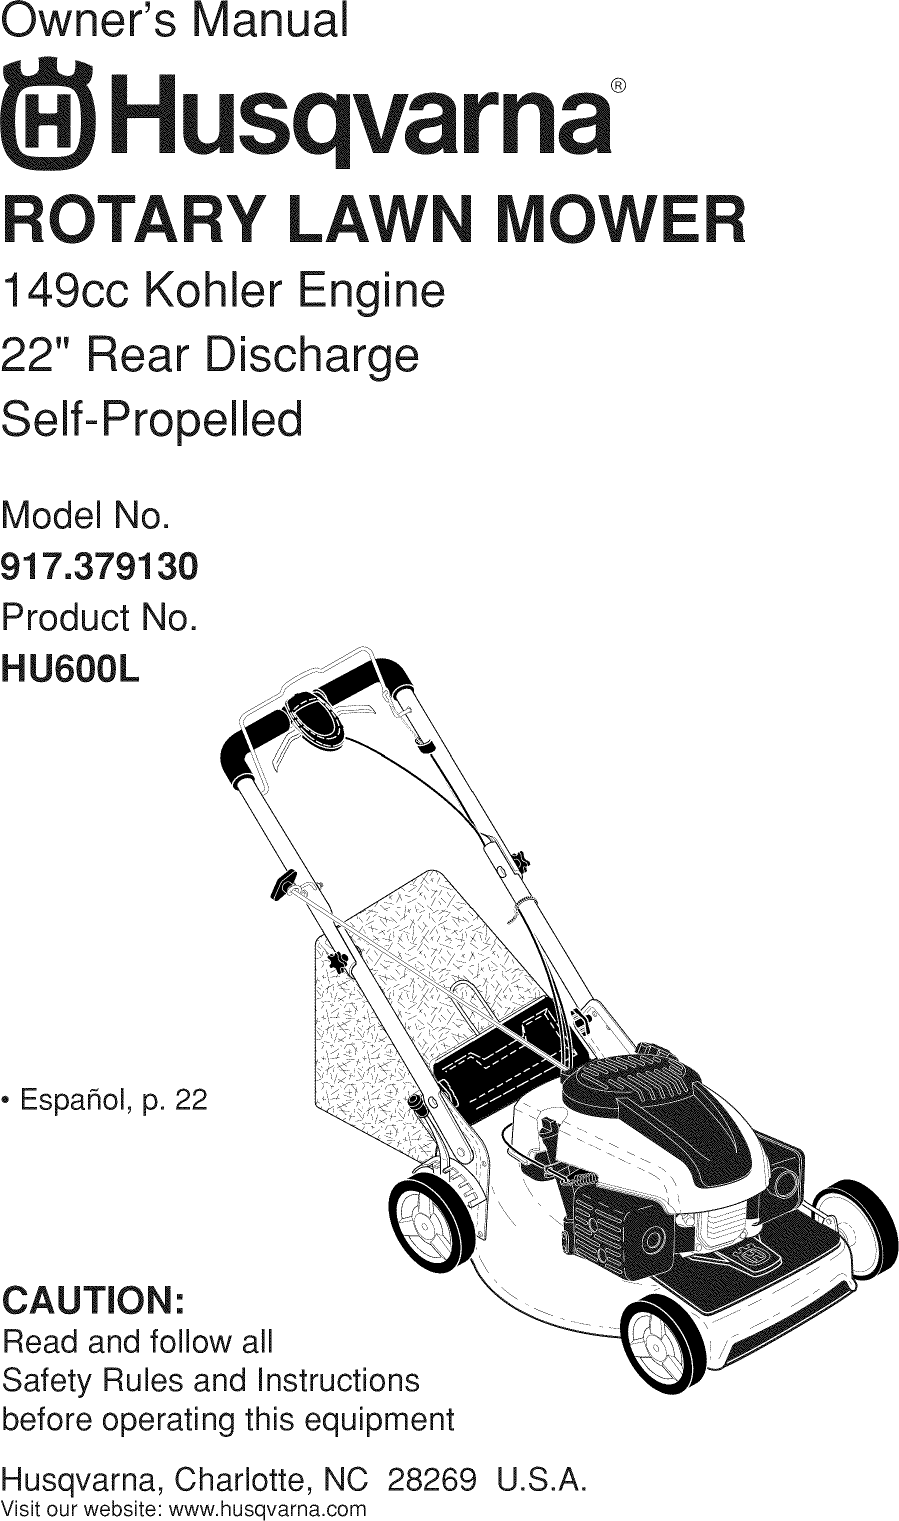 Husqvarna 917379130 User Manual MOWER Manuals And Guides